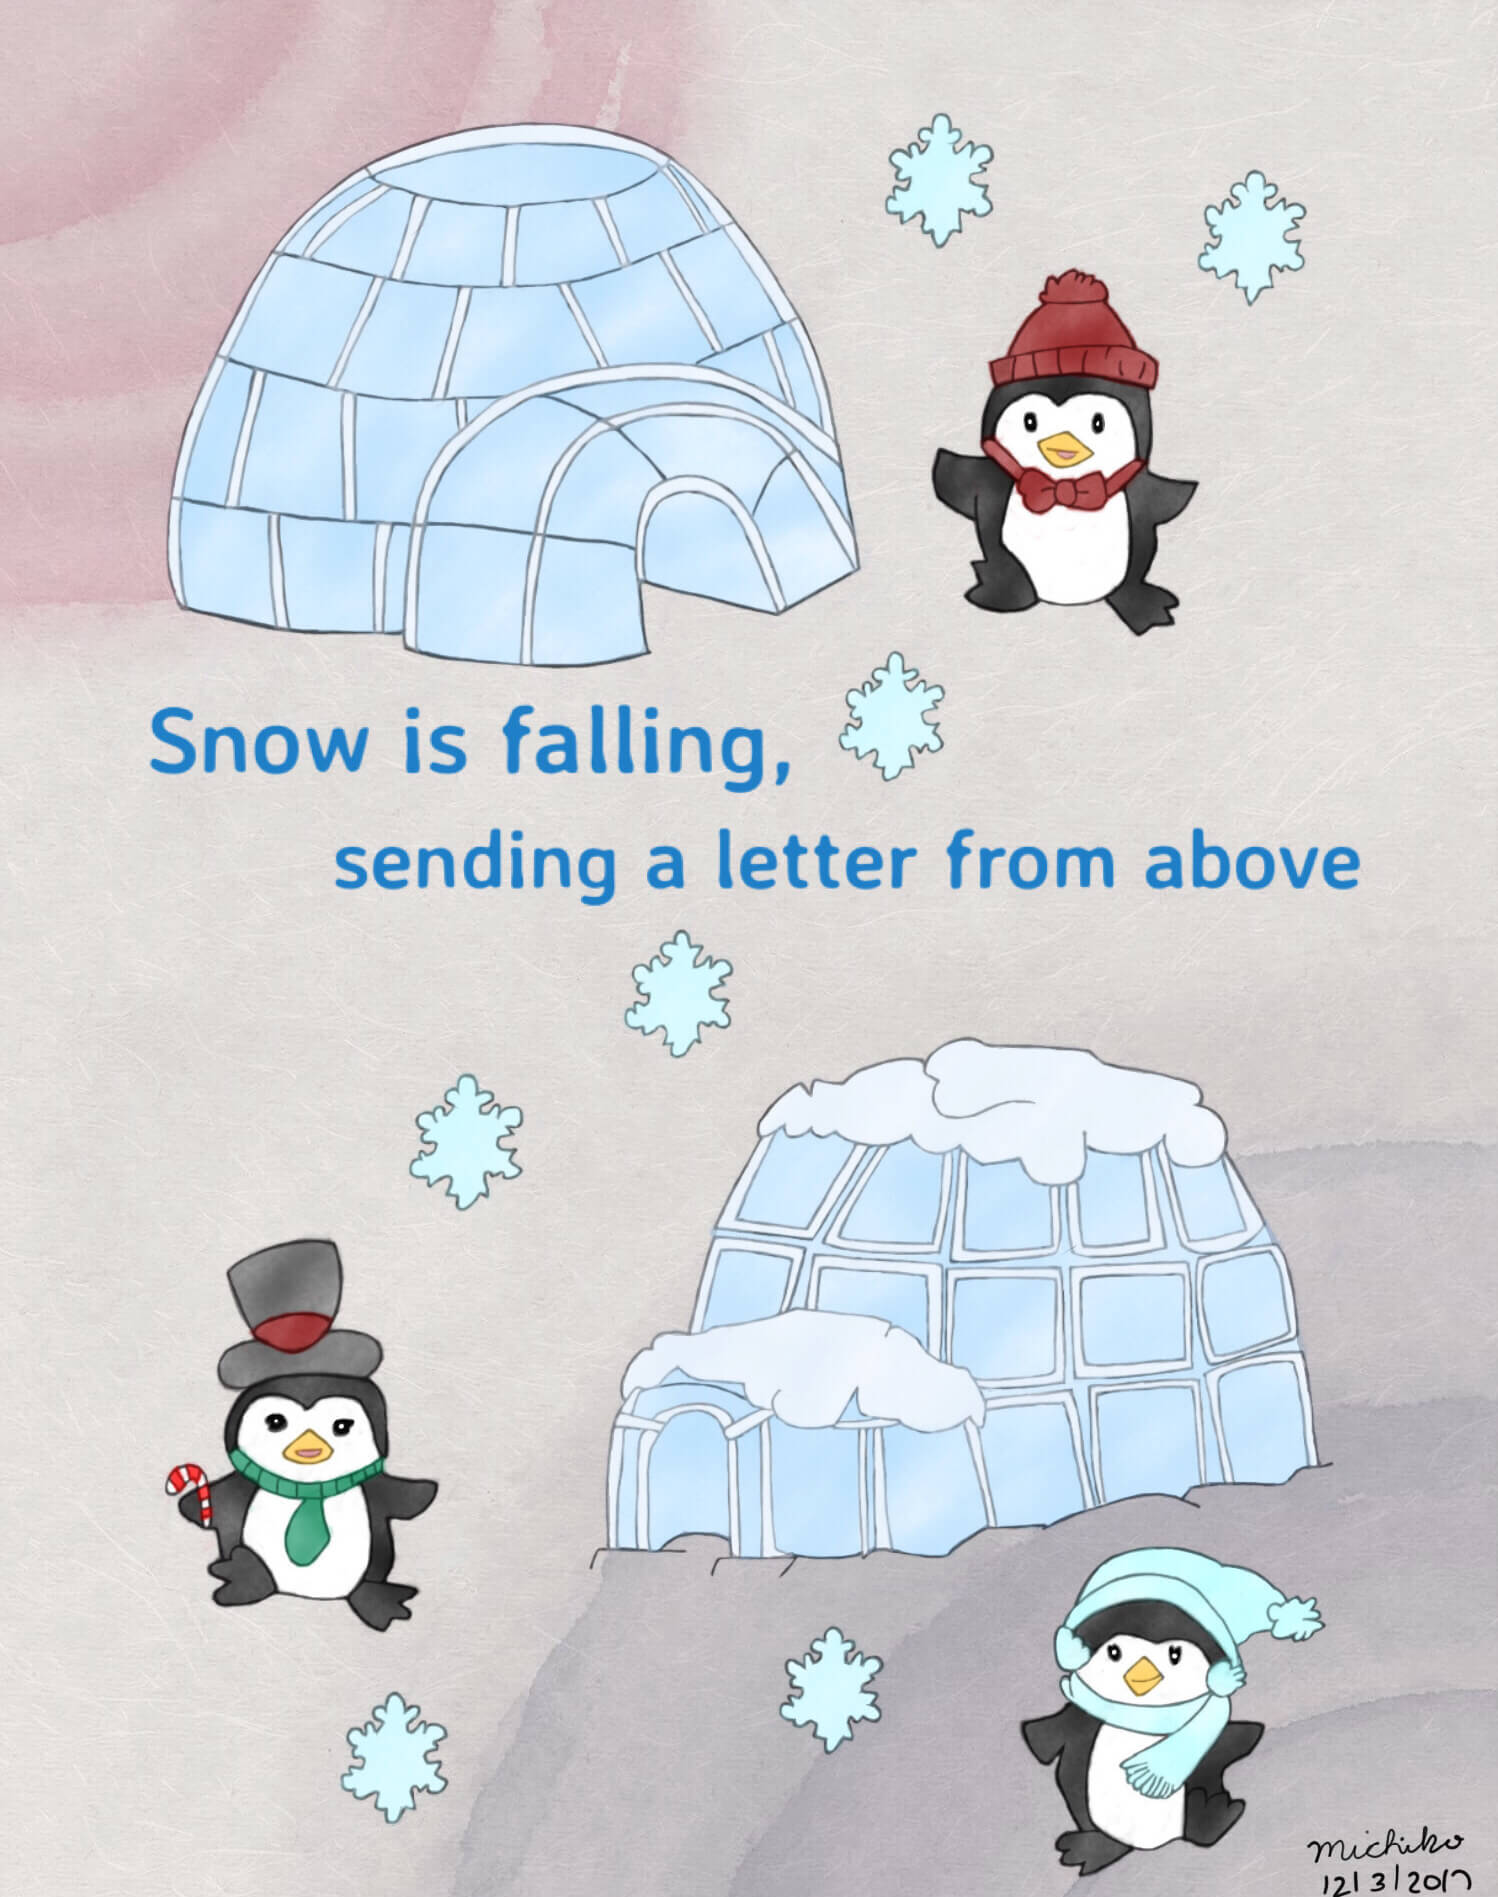 Snow is falling, sending a letter from above